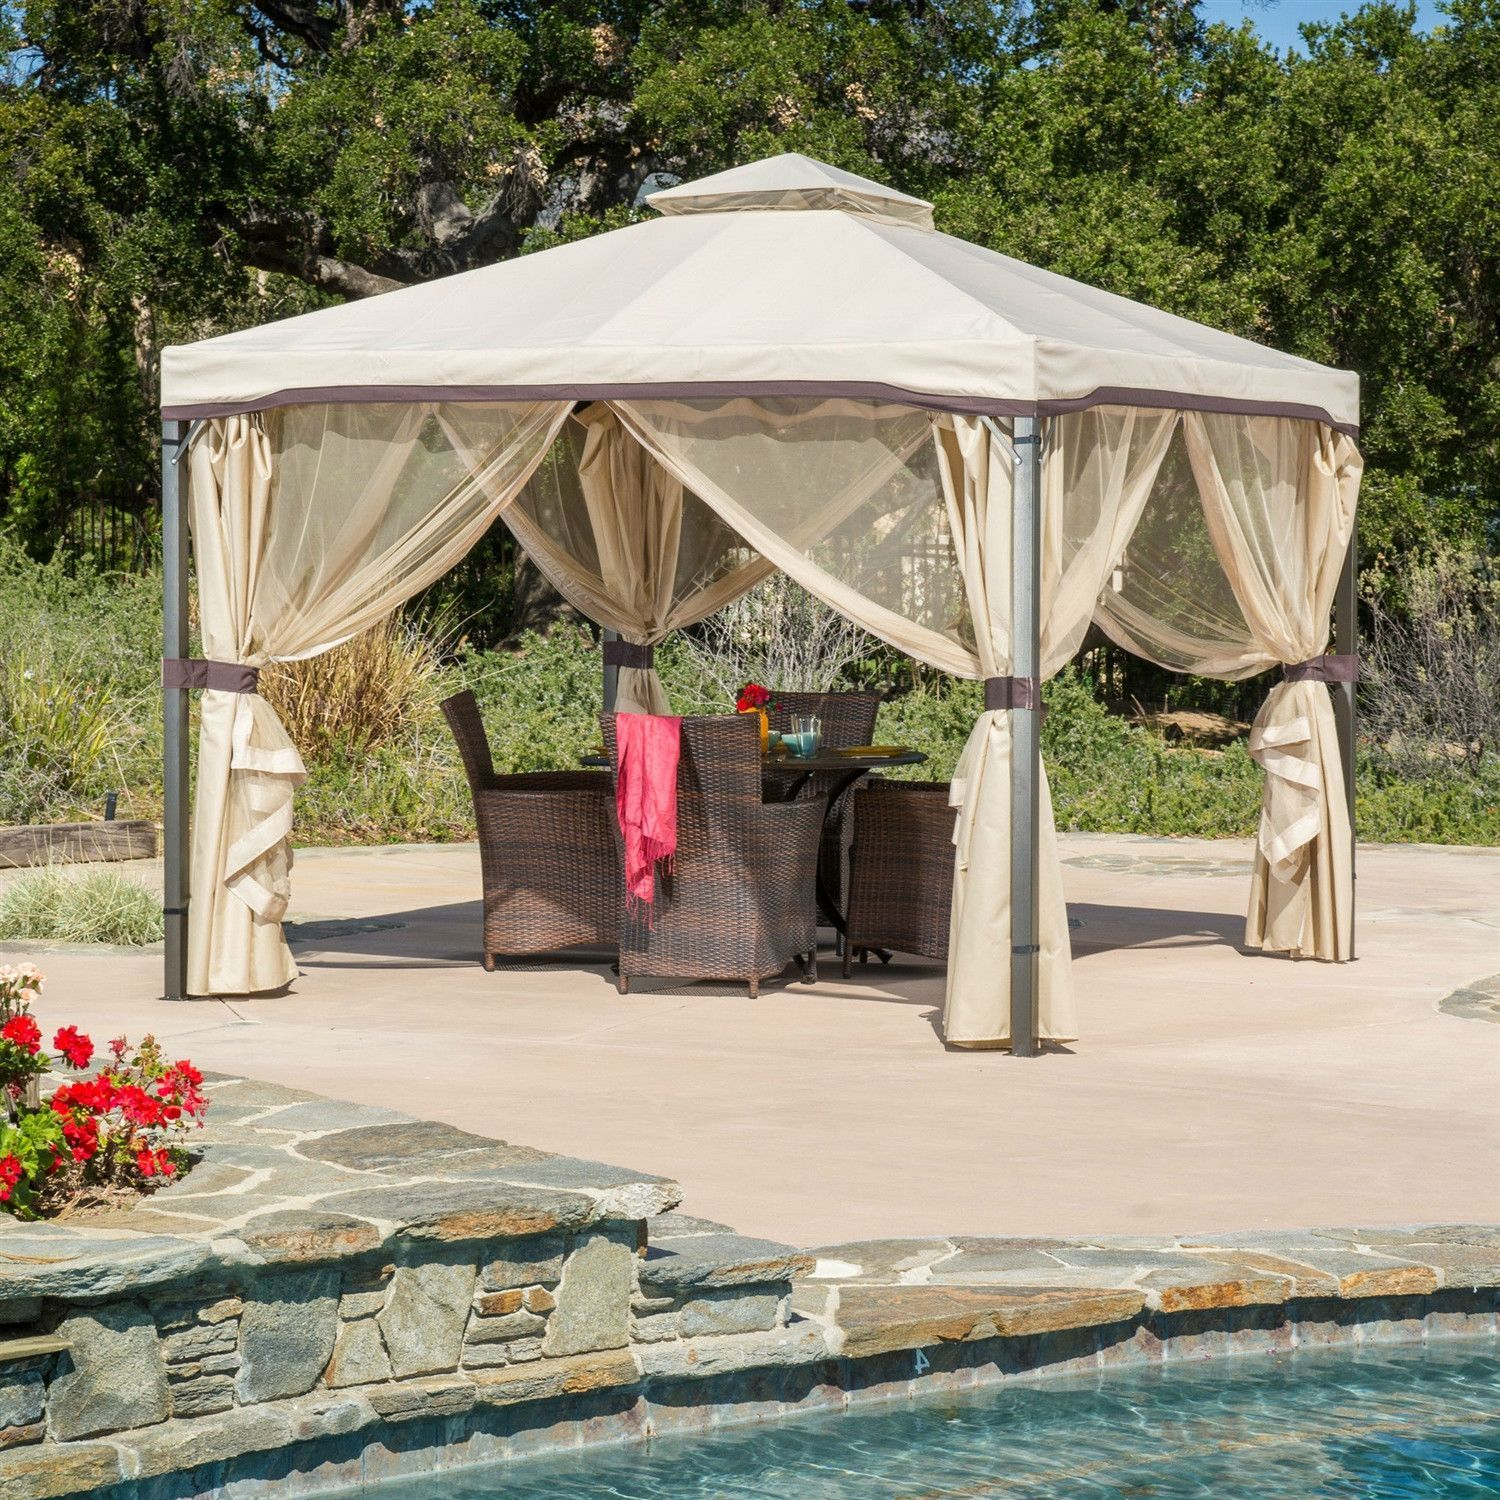 10ft X 10ft Steel Frame Gazebo With Polyester Canopy And Screen In Beige Outdoor Gazebos Gazebo Roof Canopy Outdoor